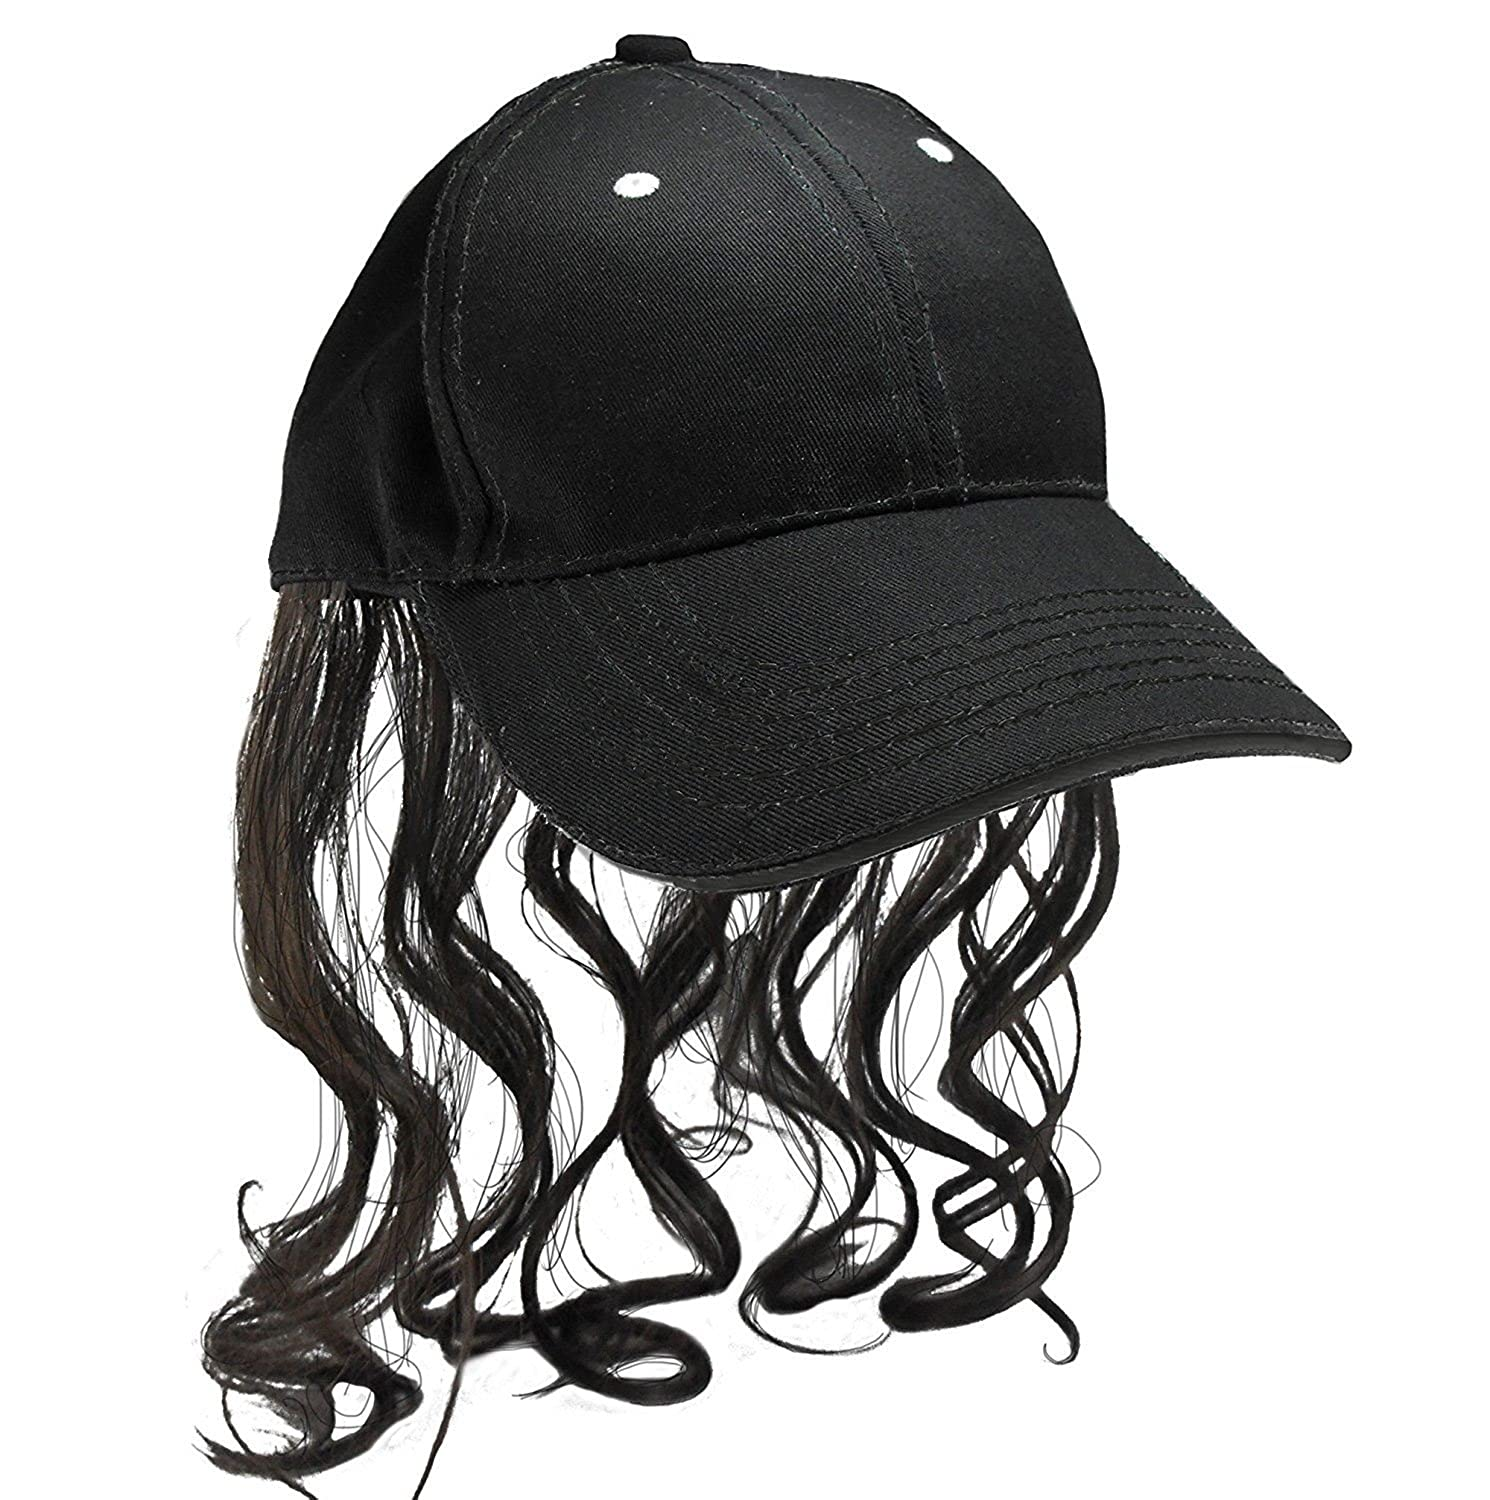 5708391ab19 Amazon.com  Hillbilly Mullet Cap With Sewn In Polyester Hair - Get Your  Redneck Style On  Clothing